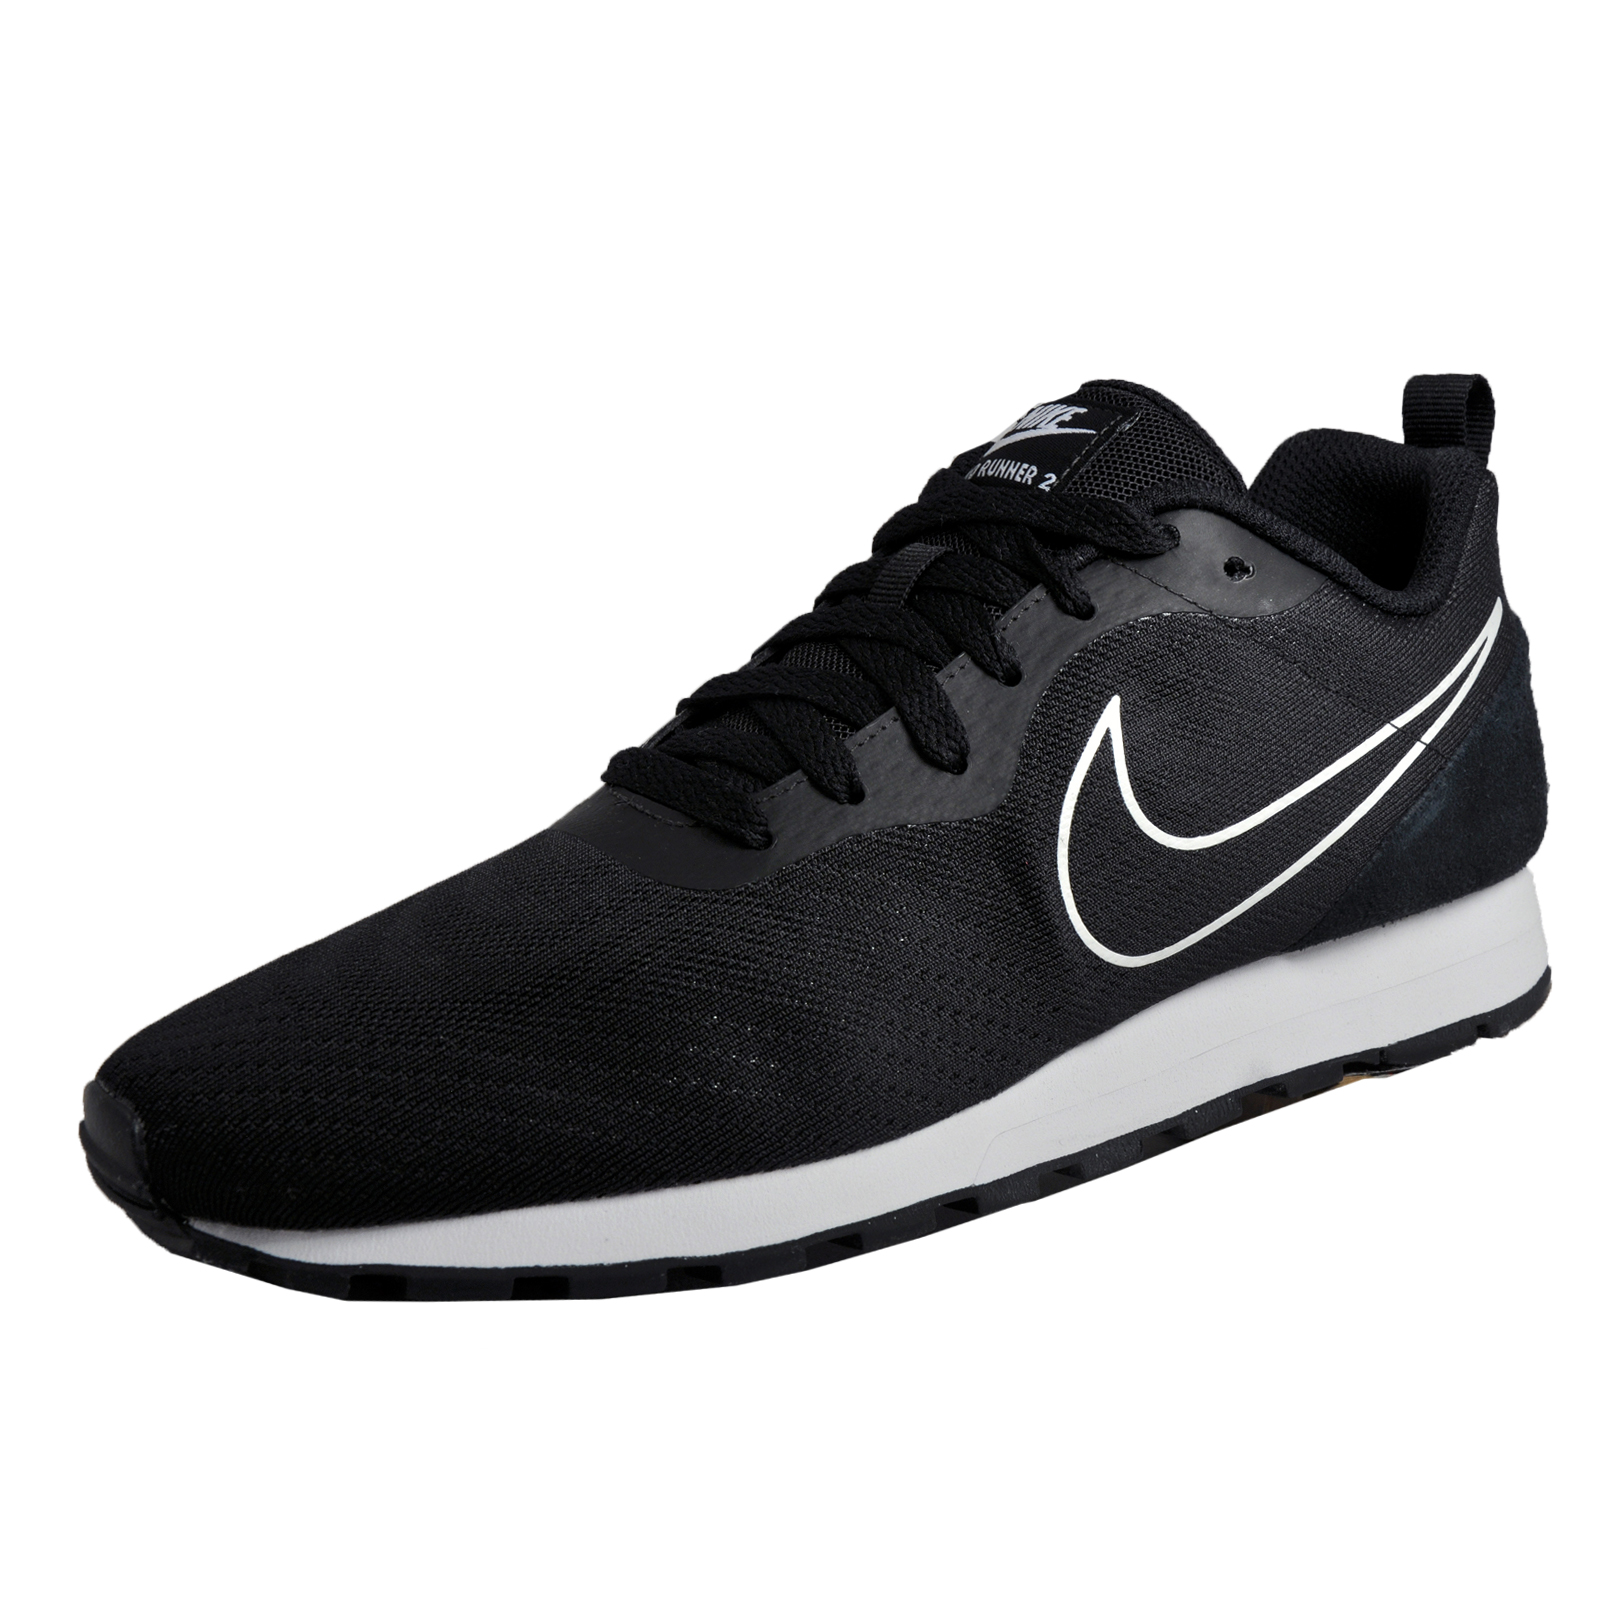 promo code b1eca 77ee5 Details about Nike MD Runner 2 Eng Mesh Mens Classic Casual Retro Trainers  Black